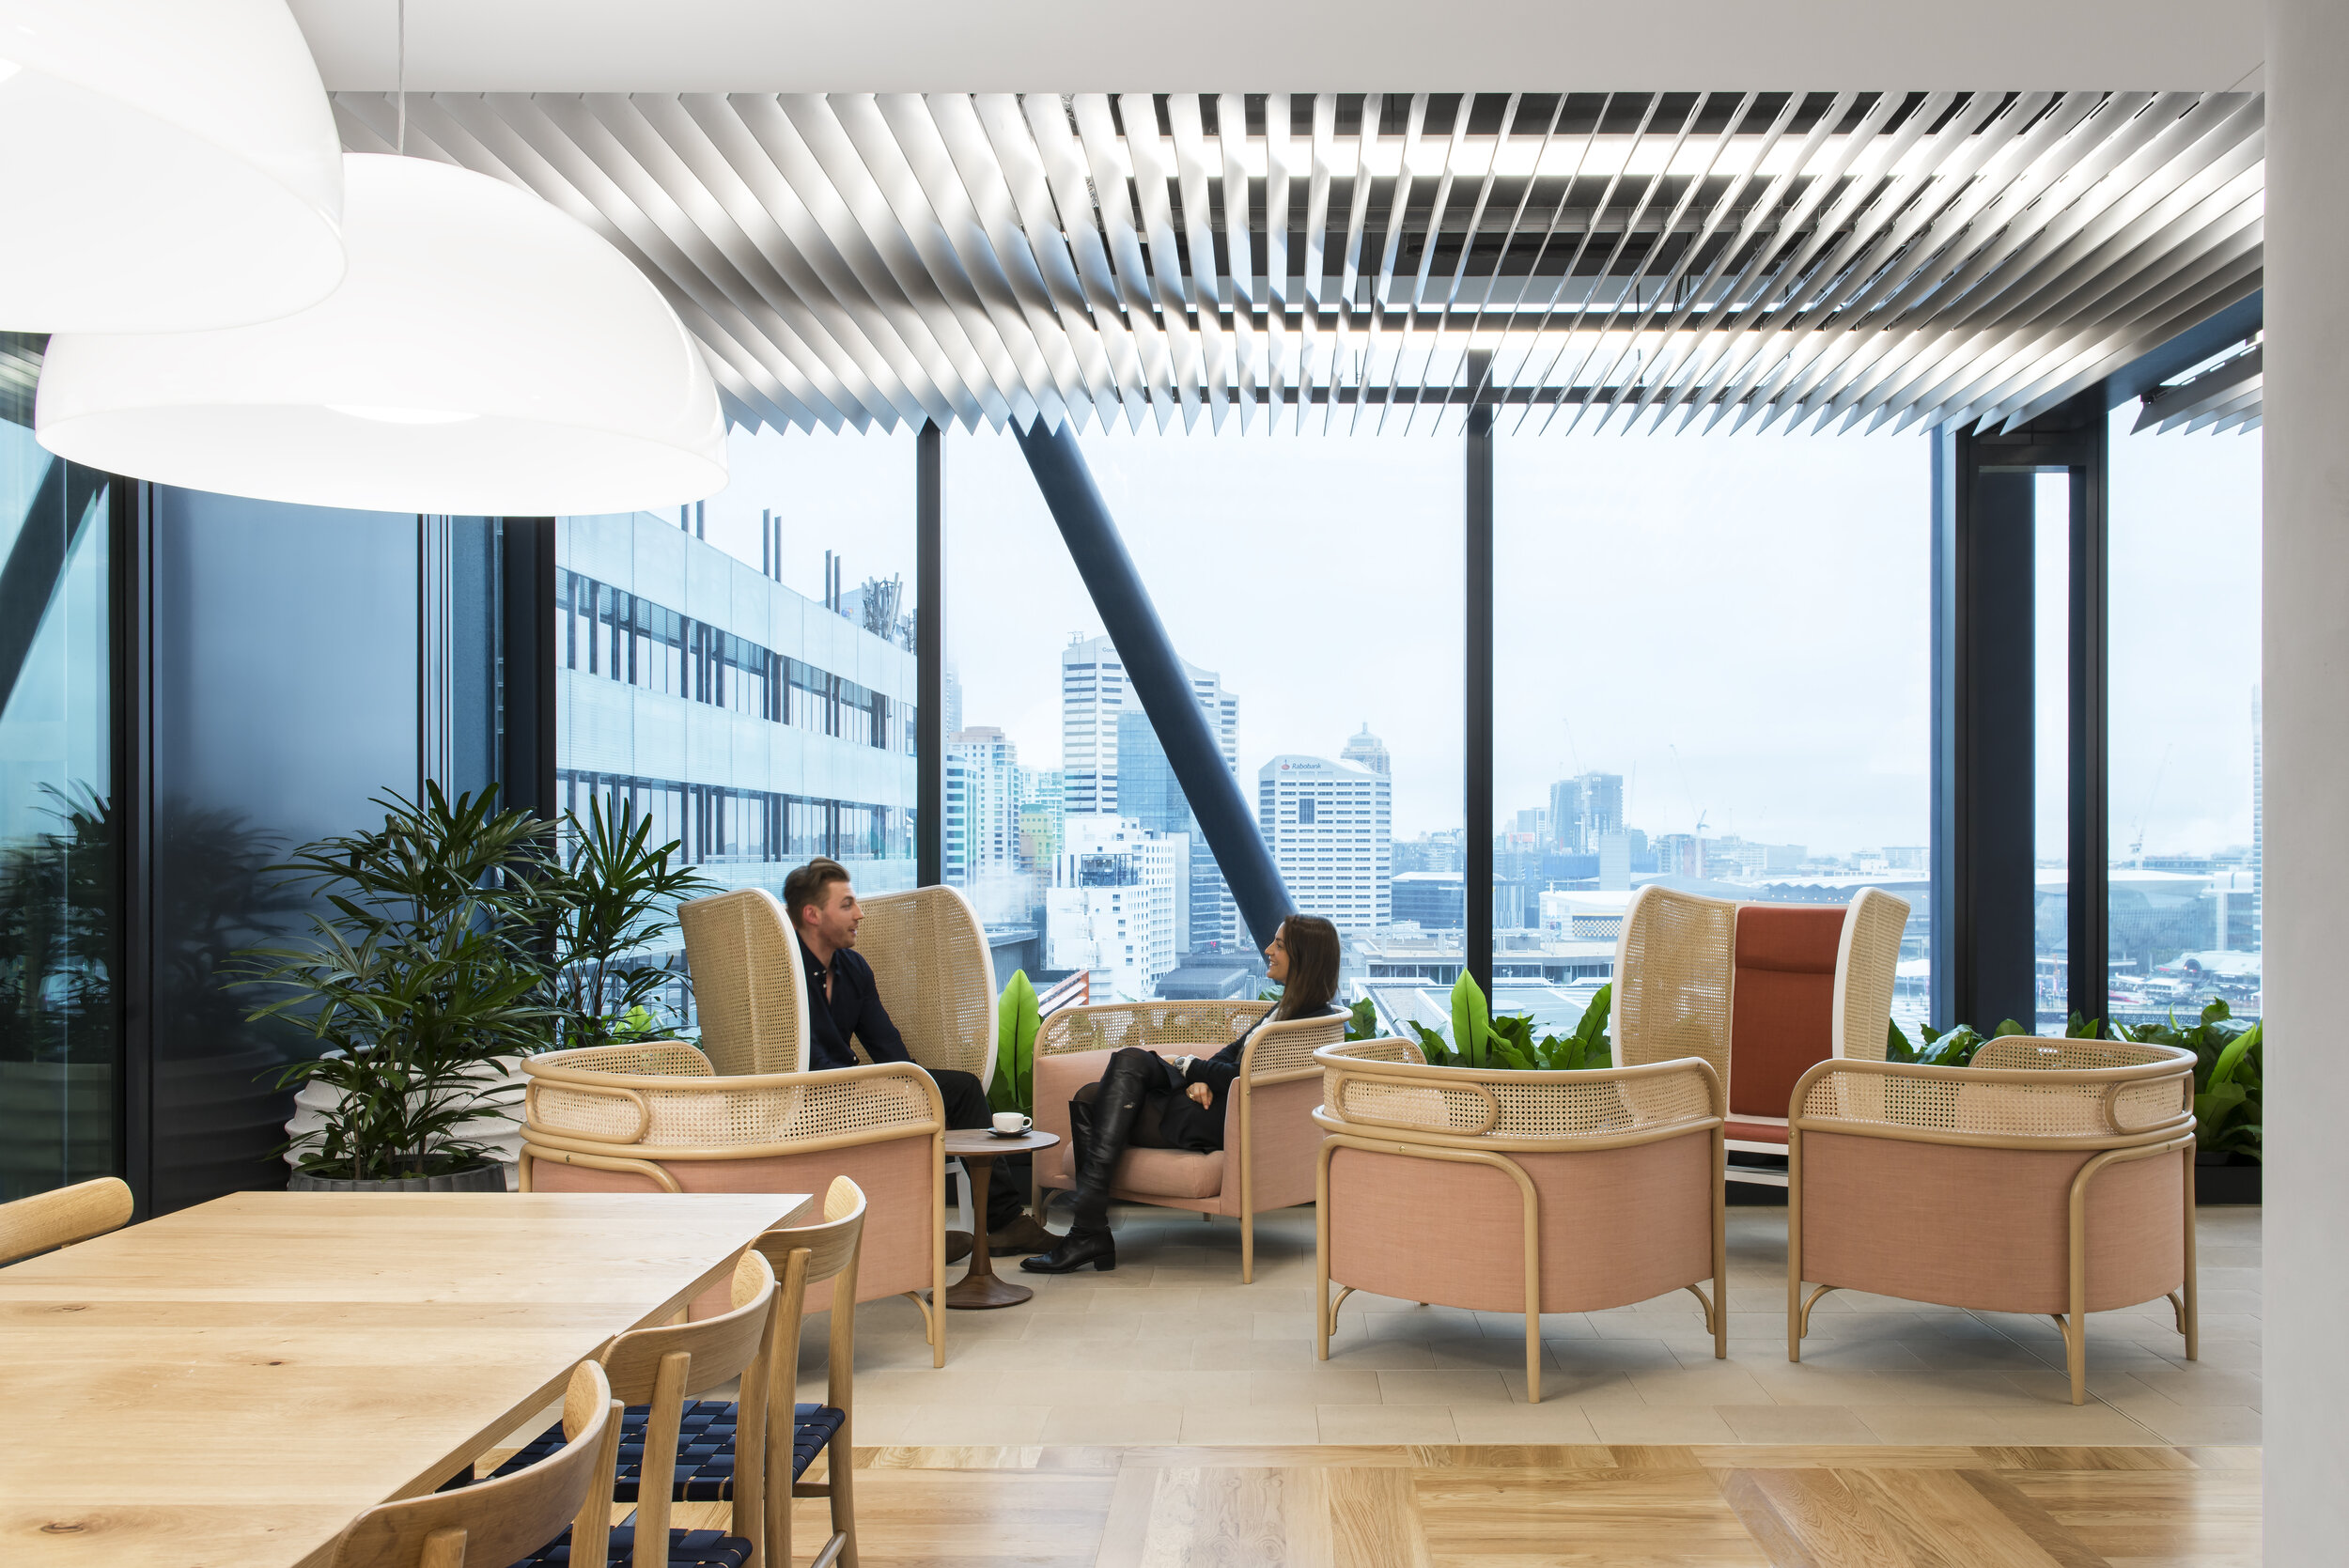 Lendlease at Barangaroo in Sydney has spaces for smaller group meetings that are designed to be casual and relaxing. Here, furniture selection is key to the interior experience with softer pieces by GTV including the Targa and Hideout armchairs that blur the line between work and home.  Photography © Nicole England.